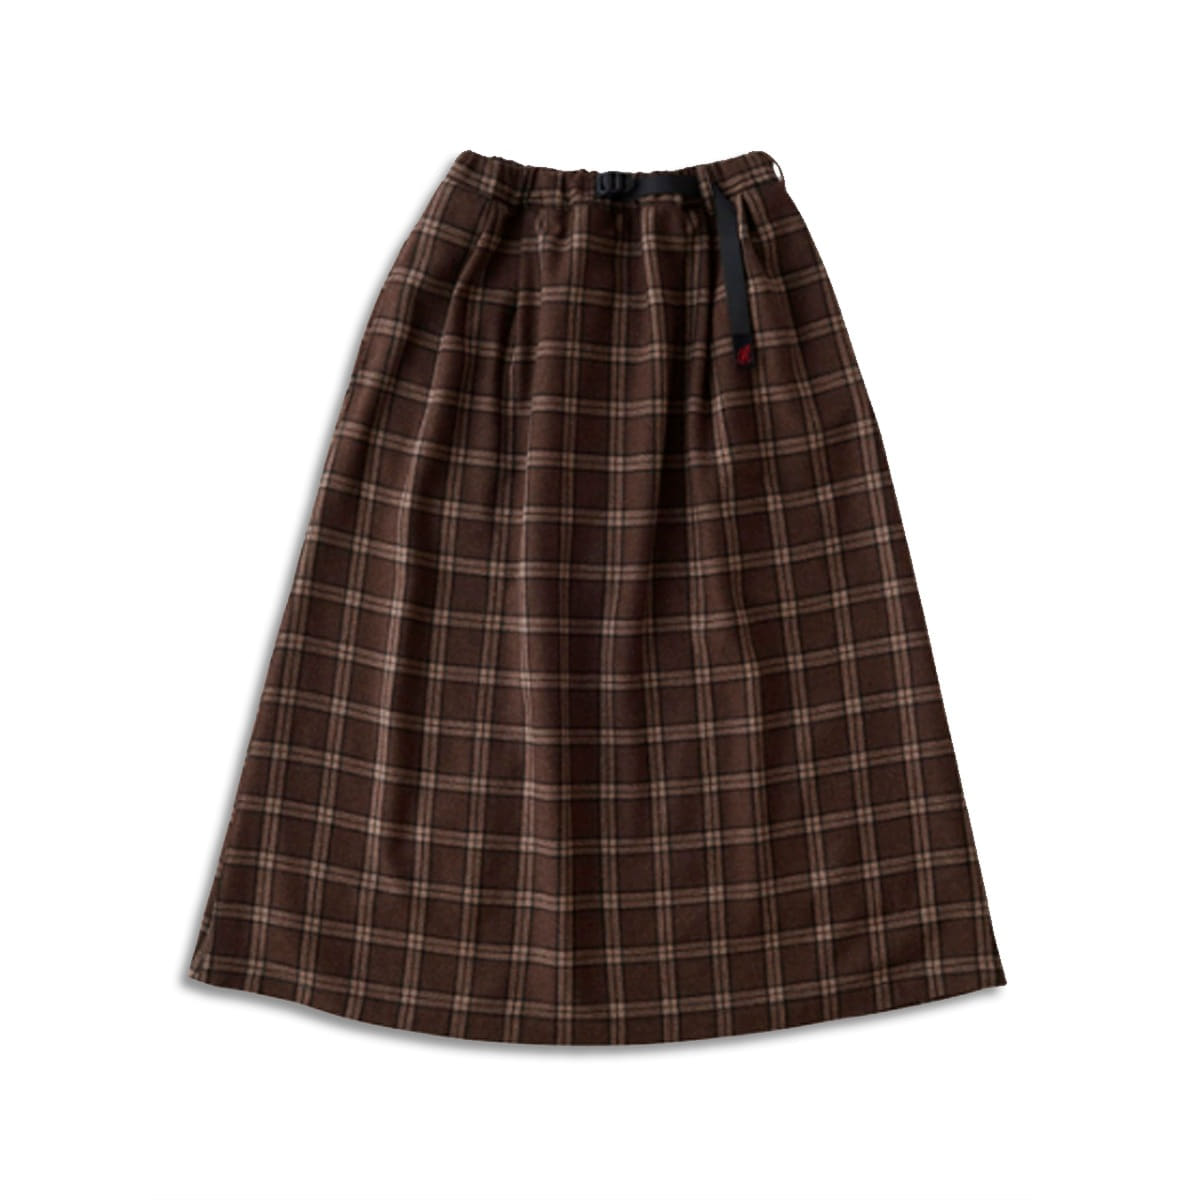 [GRAMICCI] WOOL BLEND LONG FLARE SKIRT 'BROWN CHECK'